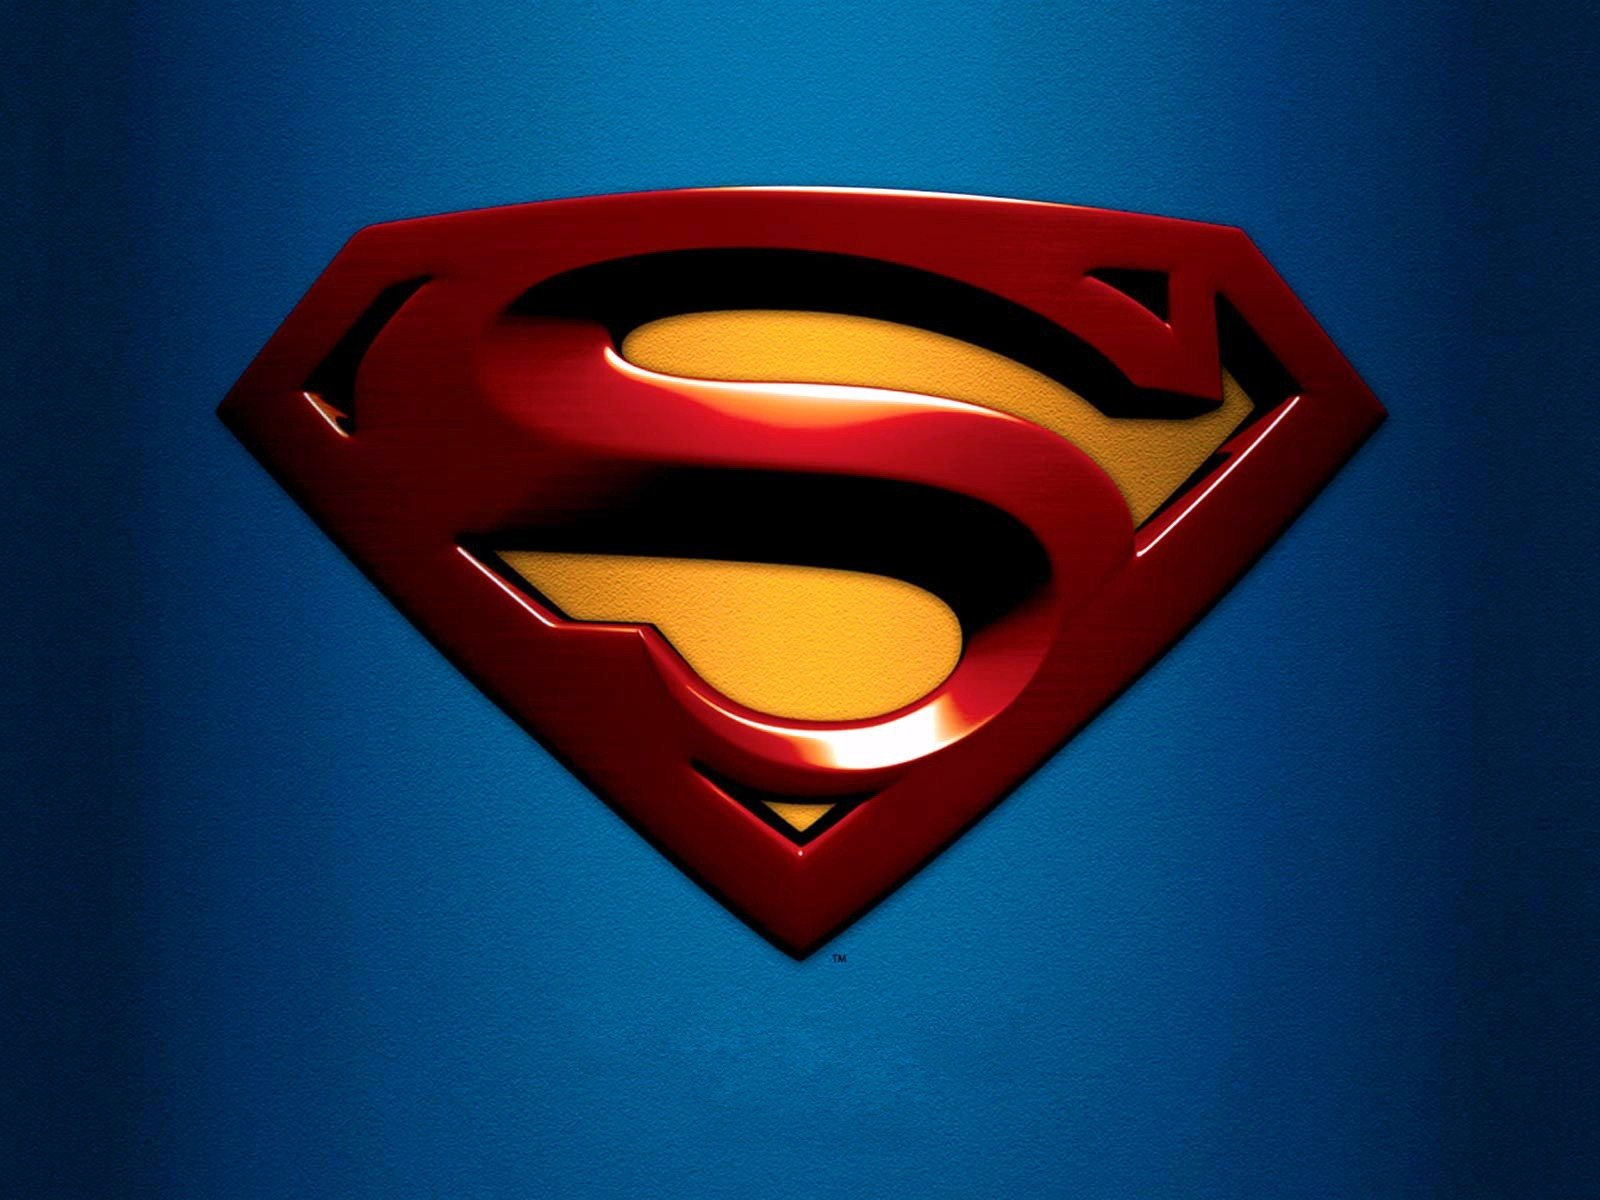 482 Superman Hd Wallpapers Background Images Wallpaper Abyss Rh Wall Alphacoders Com Full 1080p Batman Vs